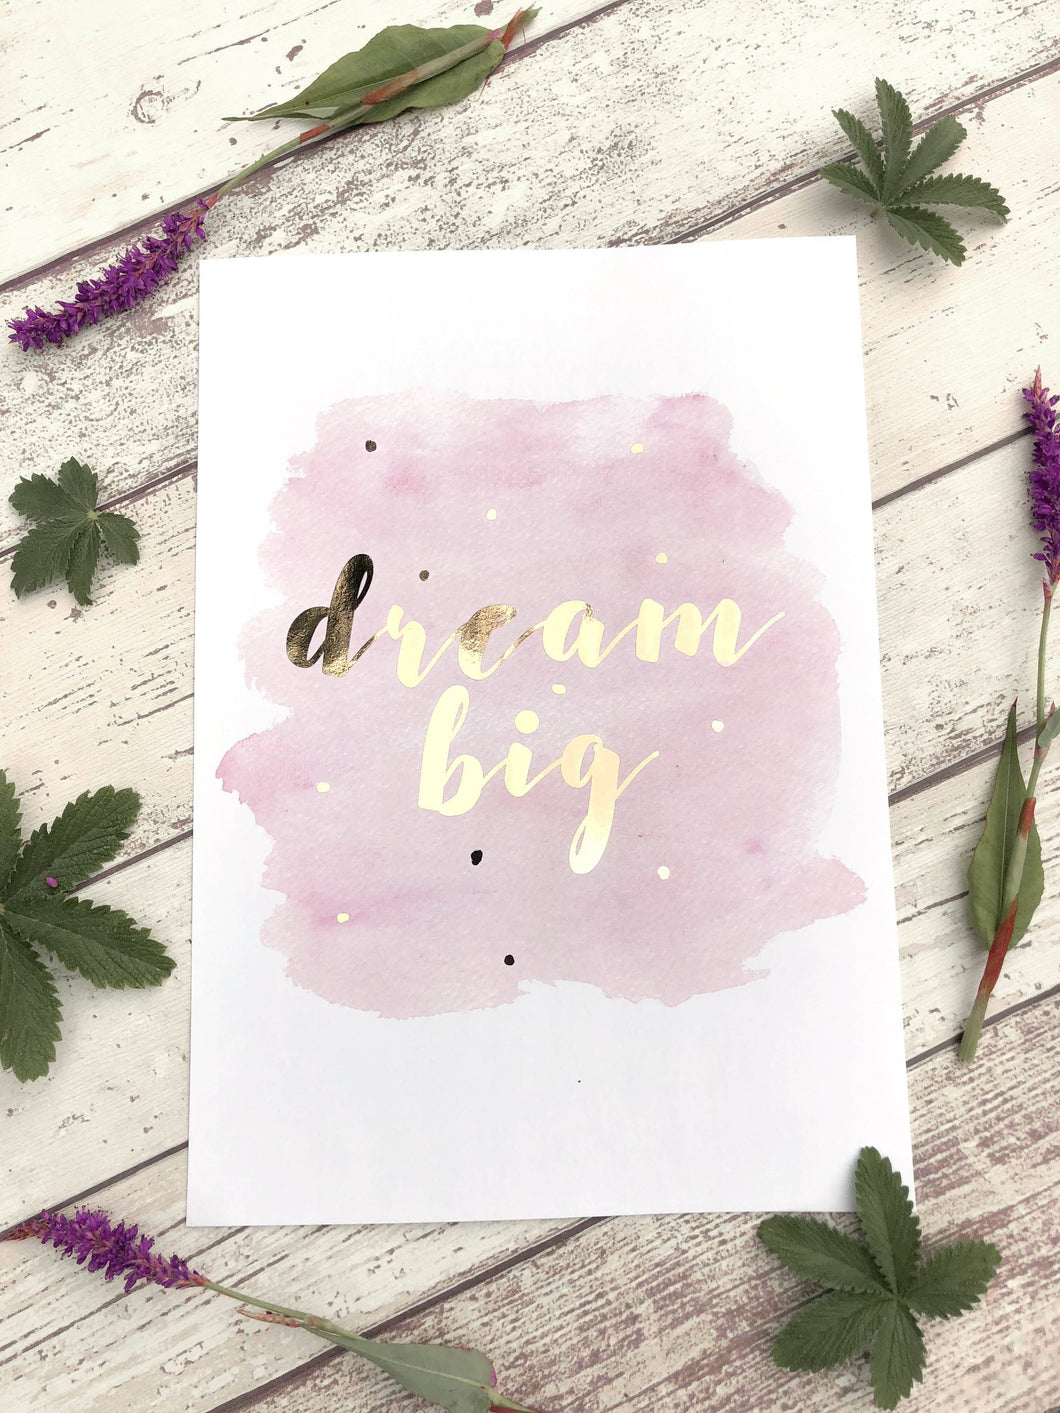 Gold Foil Prints 5 - Dream Big Print Poster, Gold Foil Print Art, Rose Gold Foil Prints